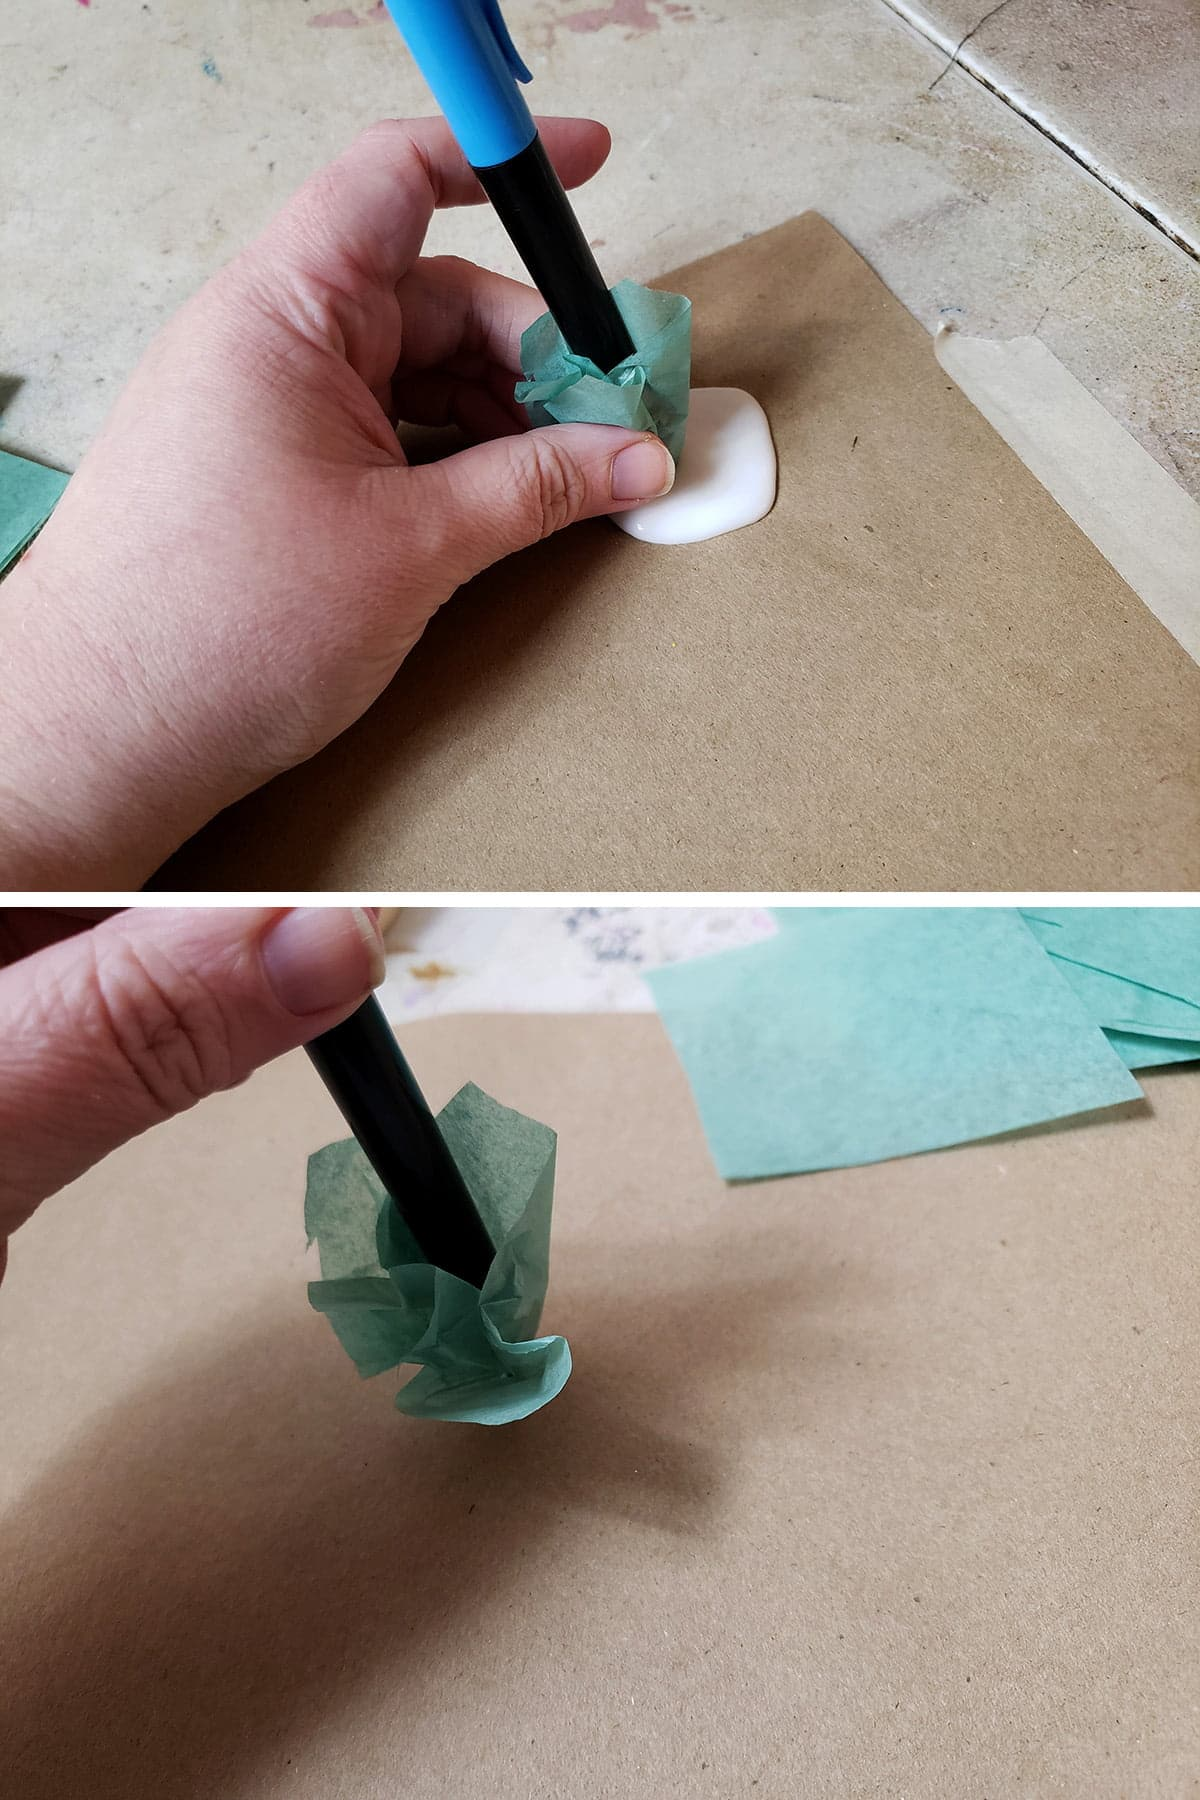 A two part compilation image shows the tissue-covered pen being dabbed in glue, then applying the tissue to a piece of brown paper, forming a puff.